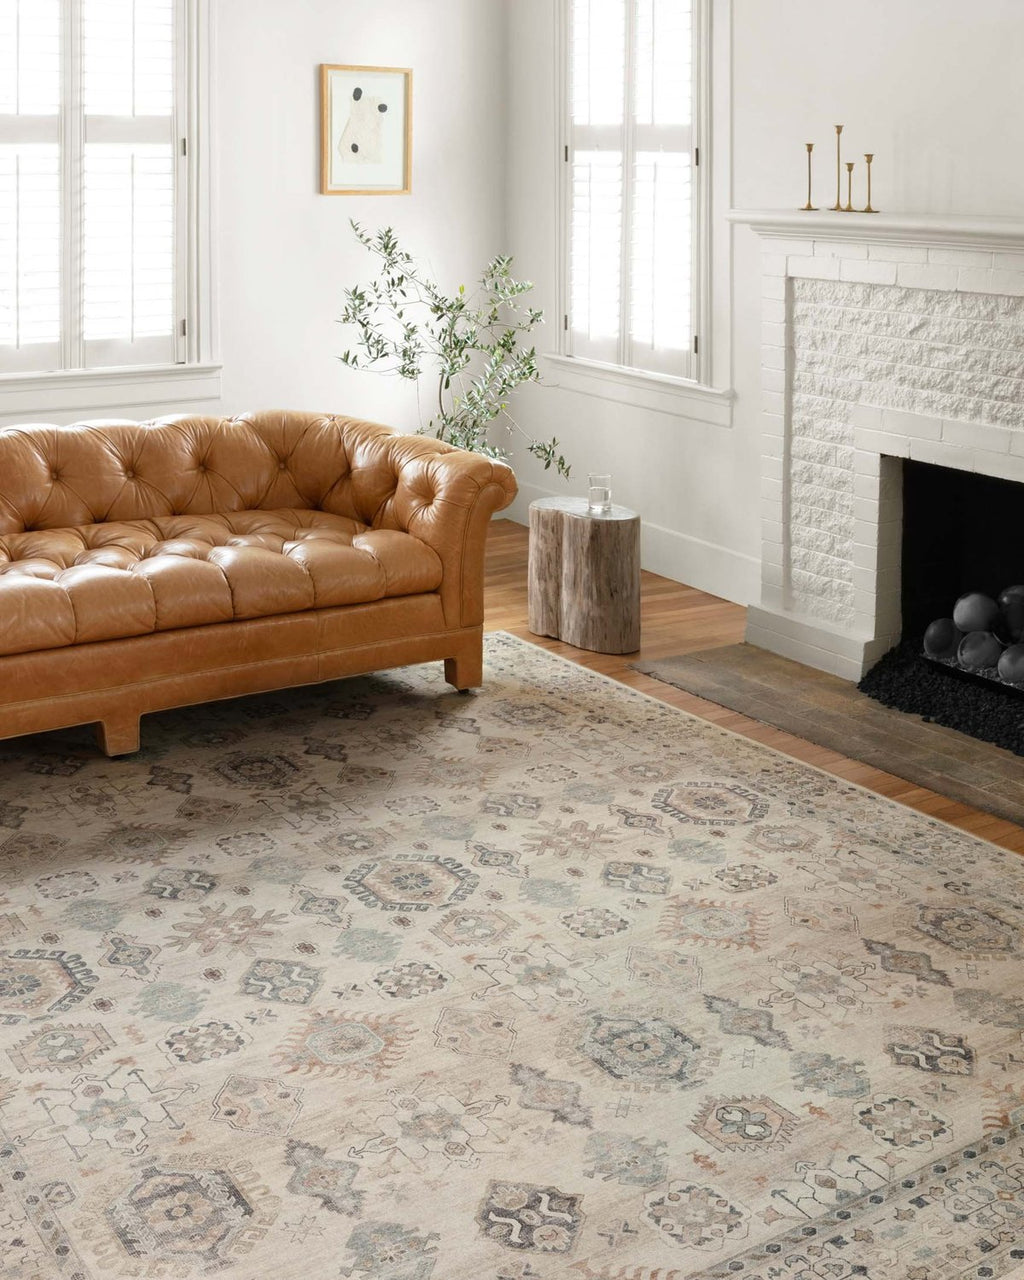 Hathaway Collection Rug in Beige / Multi